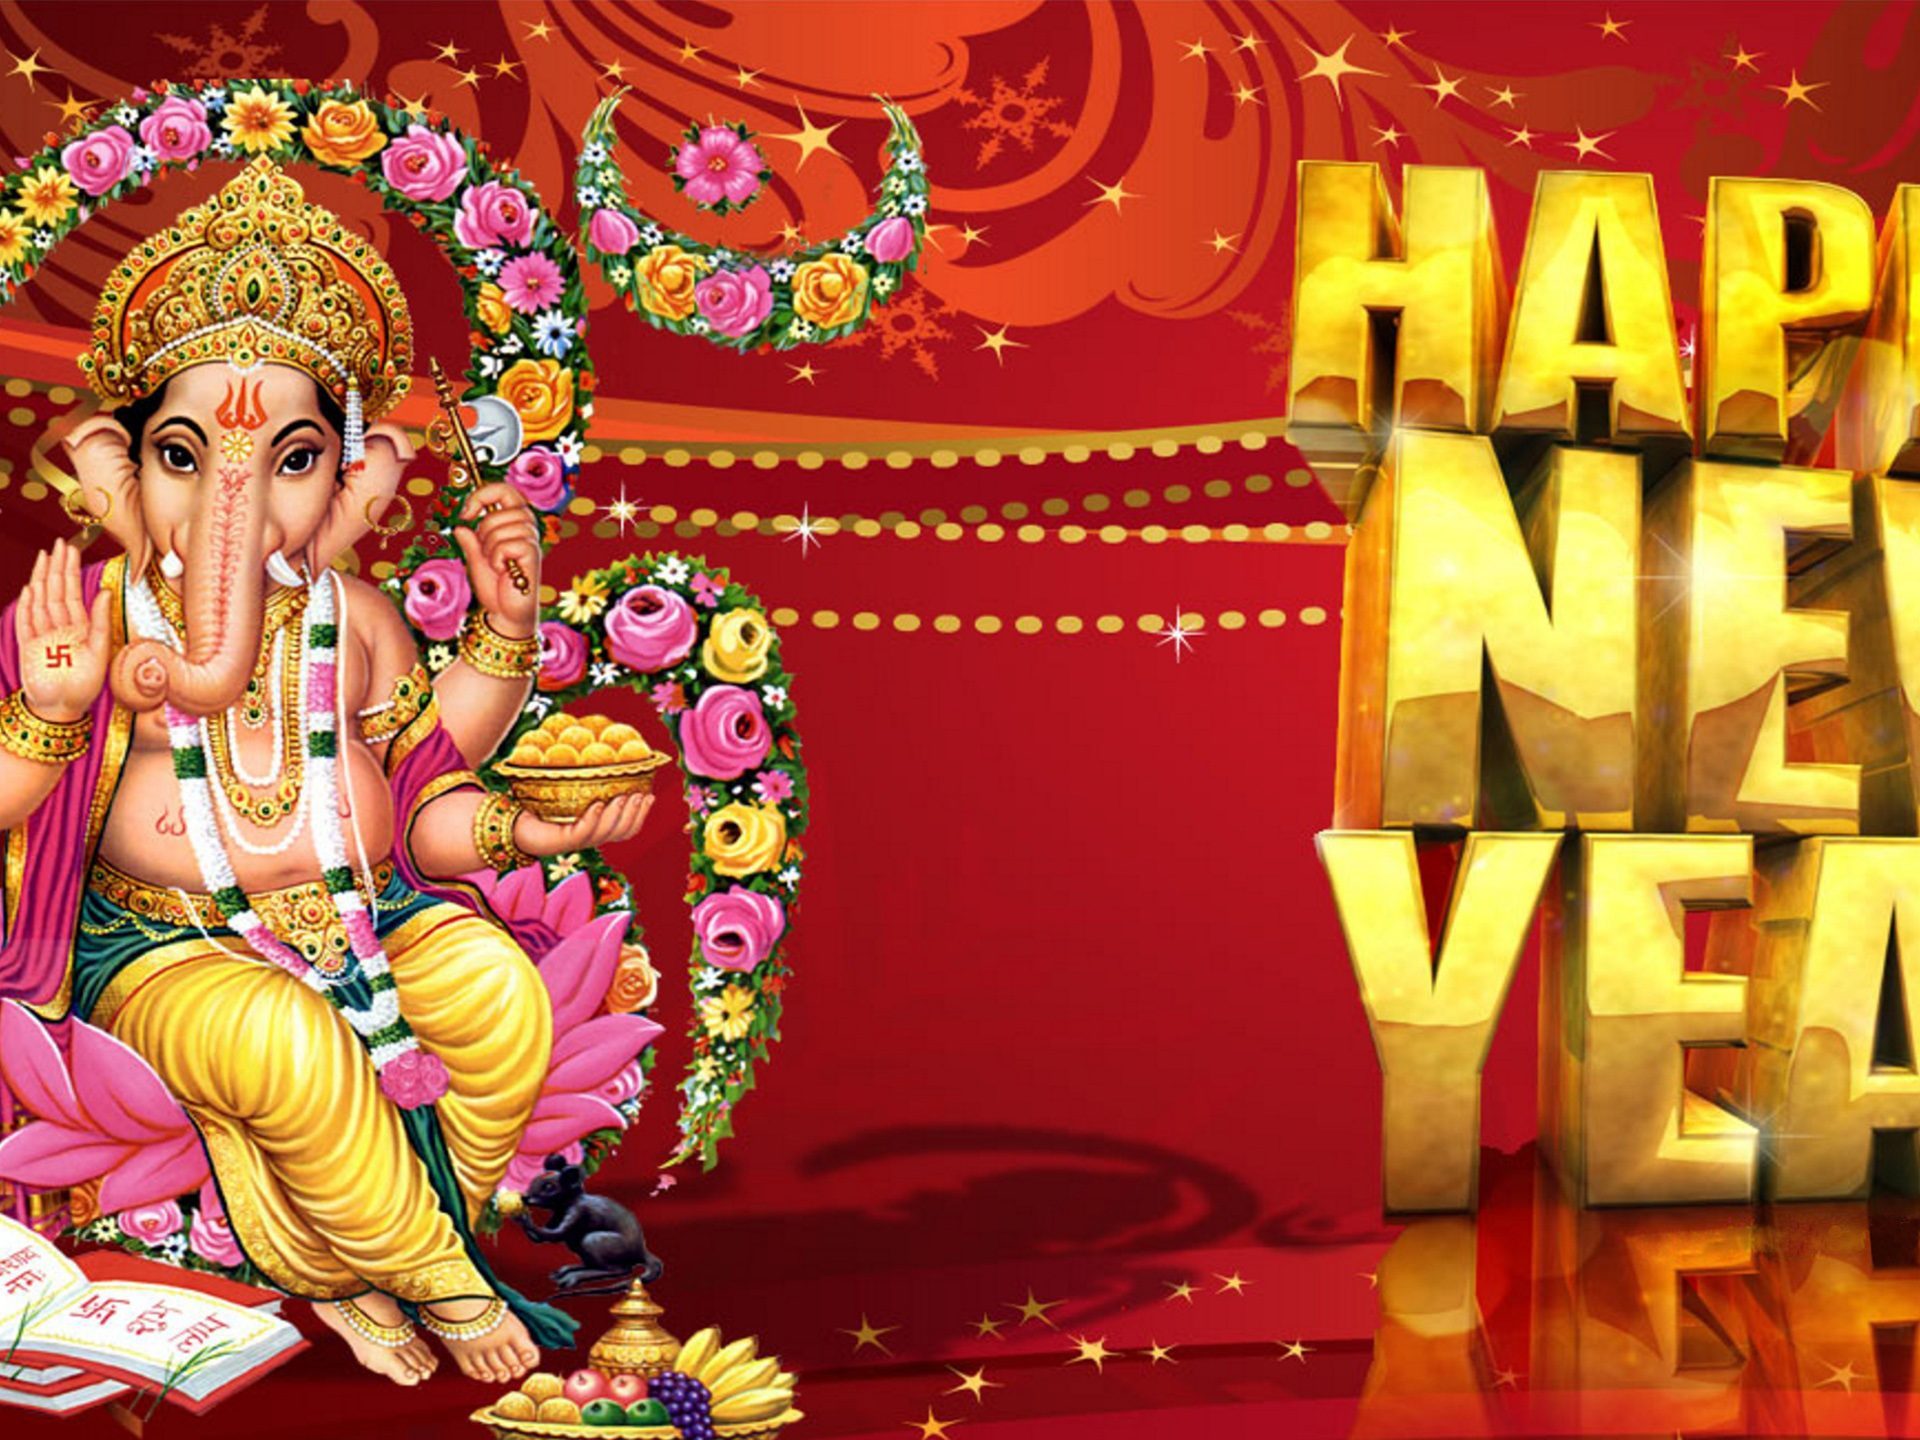 Happy New Year Indian - HD Wallpaper